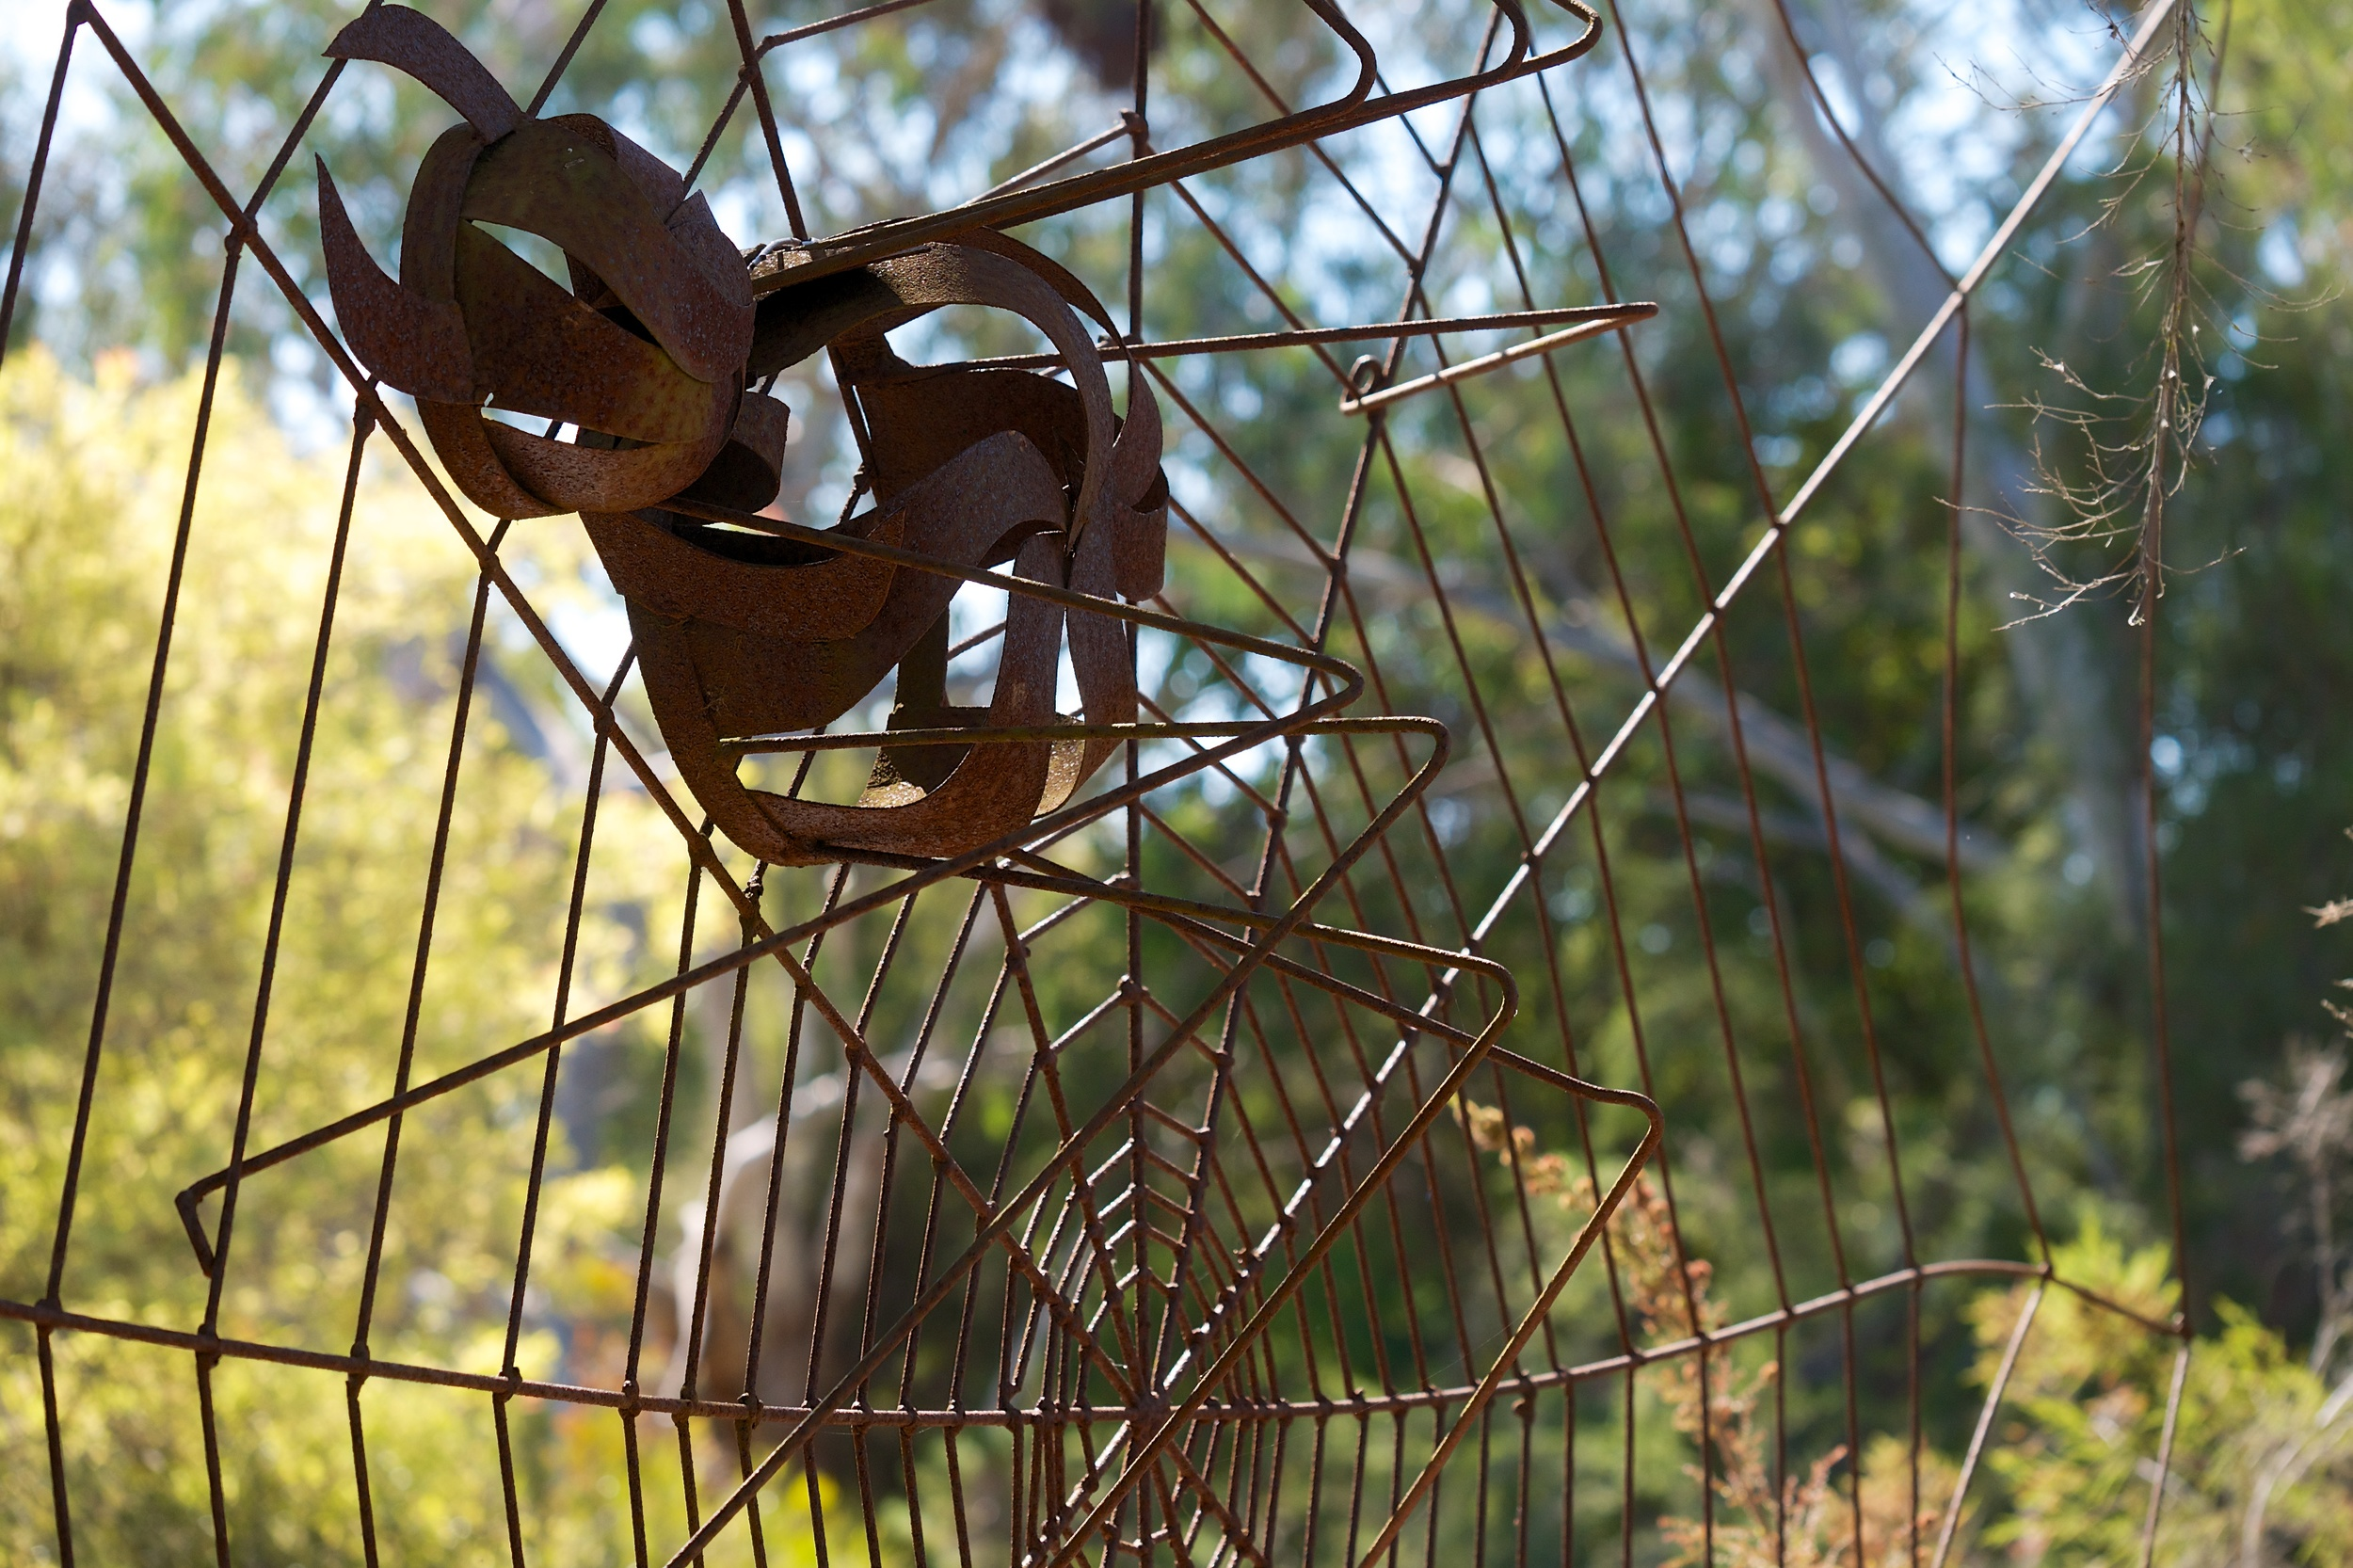 The spider in this sculpture was several feet across